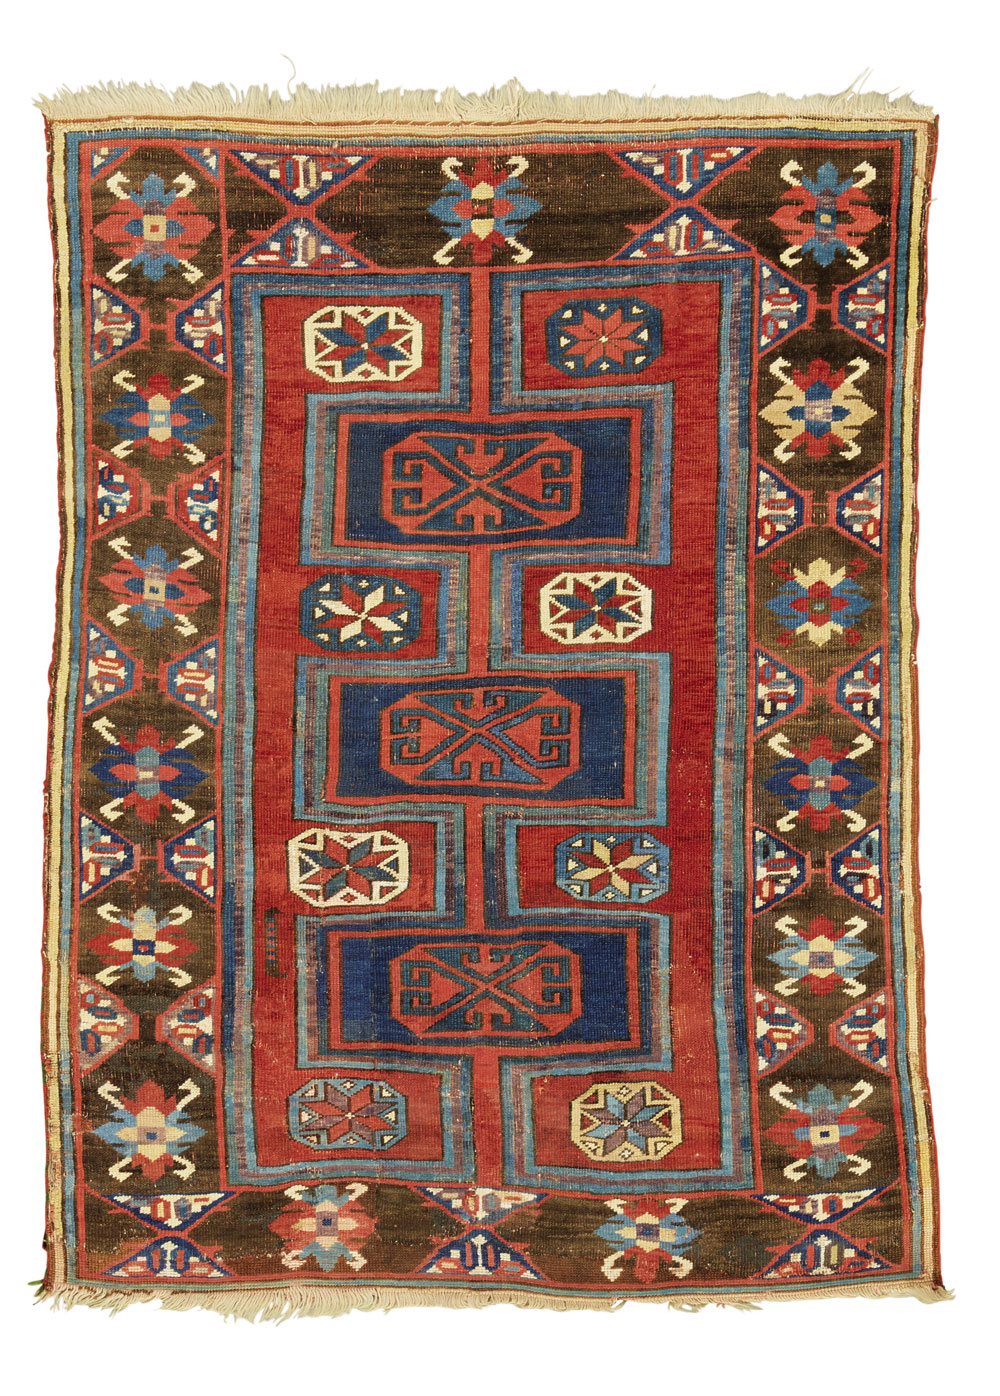 Lot 85, Karapinar rug, estimated at £2,800-4,000, sold at £31,250 ($41,090)